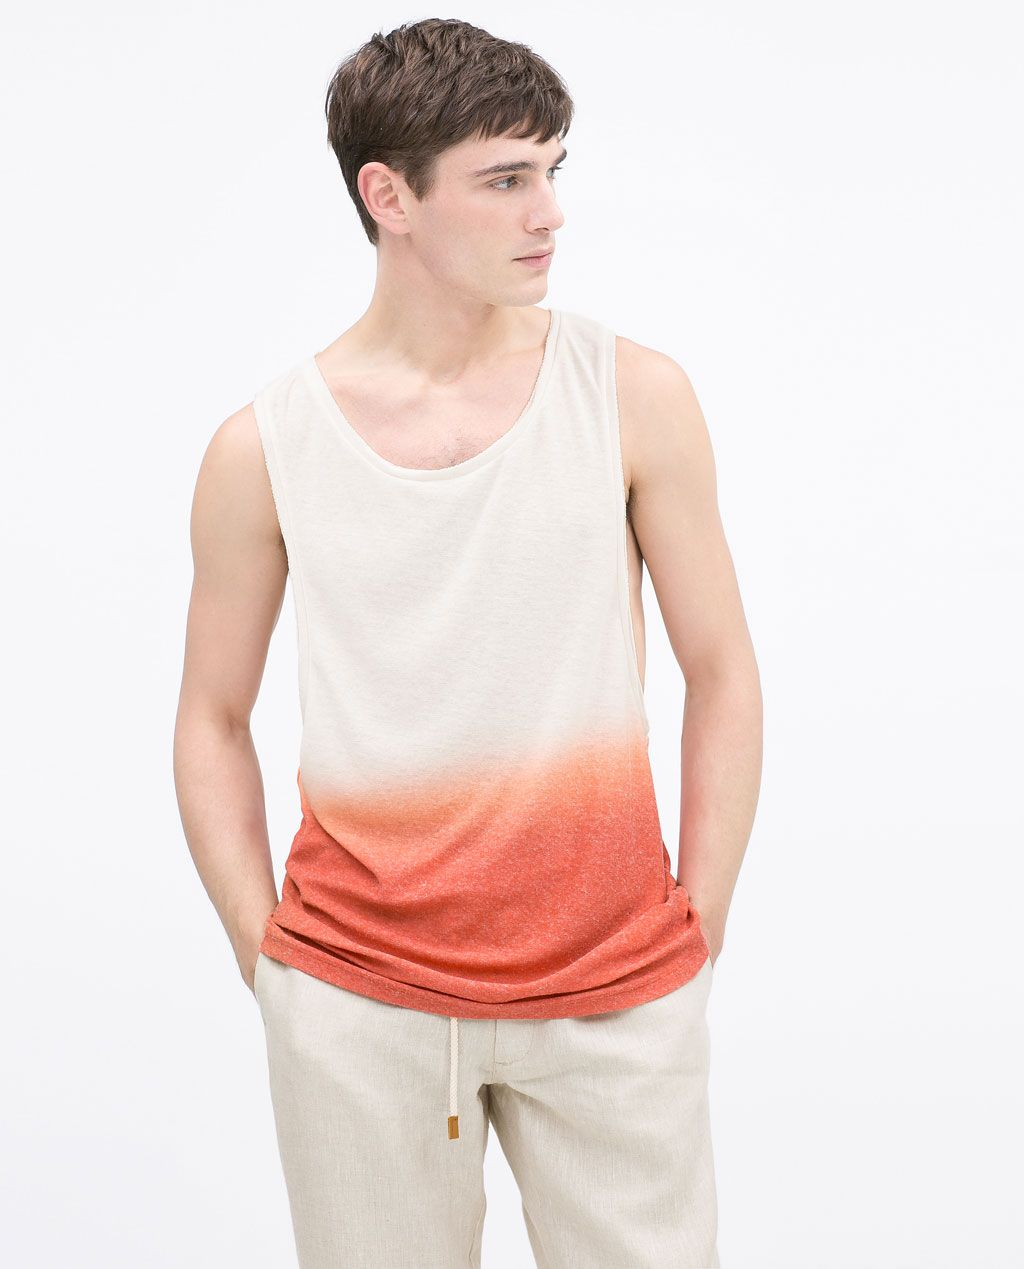 3c470dd2 ZARA - MAN - TANK TOP | grphics | Zara man, Mens tops, Zara